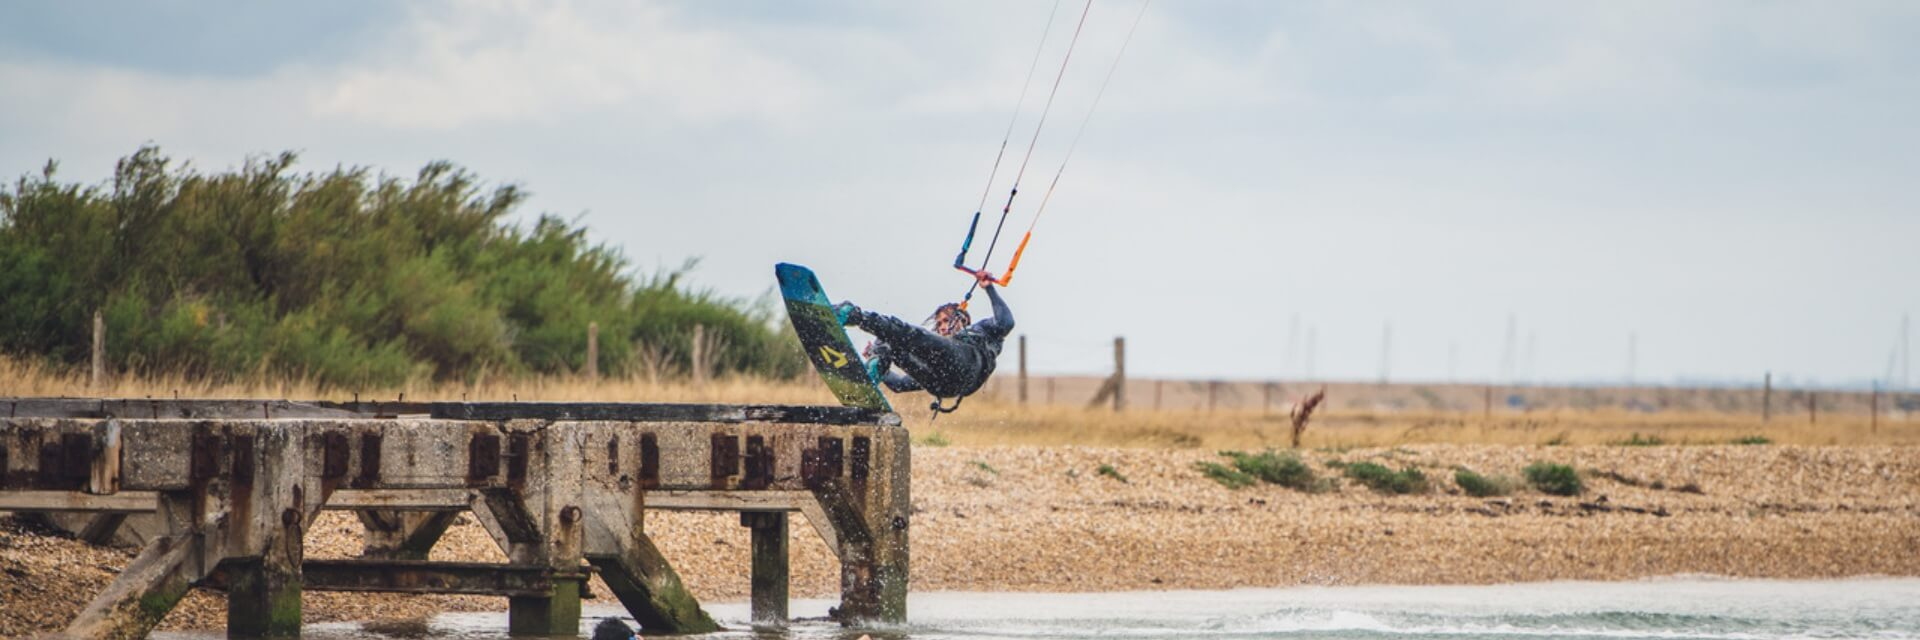 Duotone_Kiteboarding_Teamrider_Tom_Court